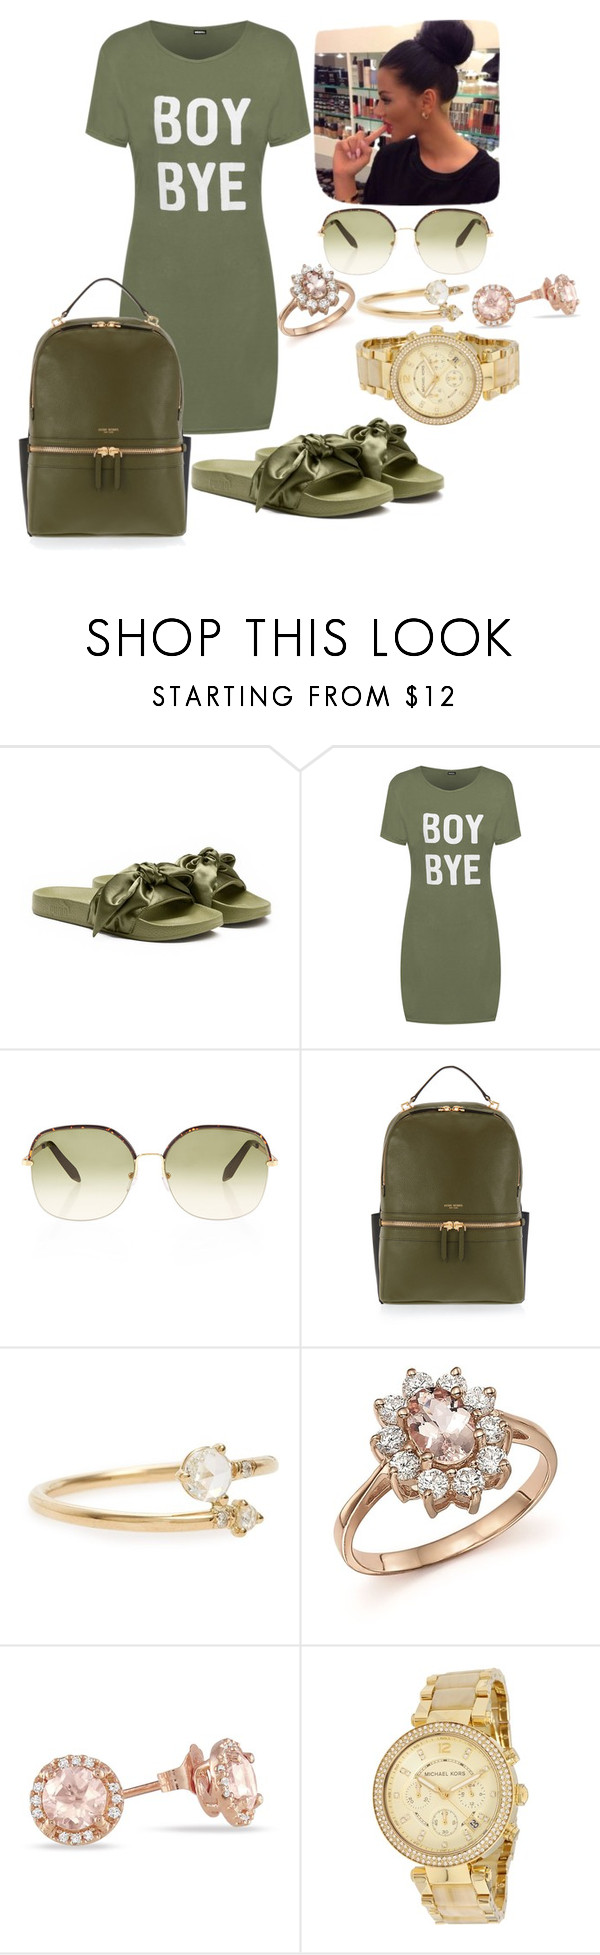 """4/1/17"" by breezygurl88 ❤ liked on Polyvore featuring Puma, WearAll, Victoria Beckham, Henri Bendel, WWAKE, Bloomingdale's and Michael Kors"